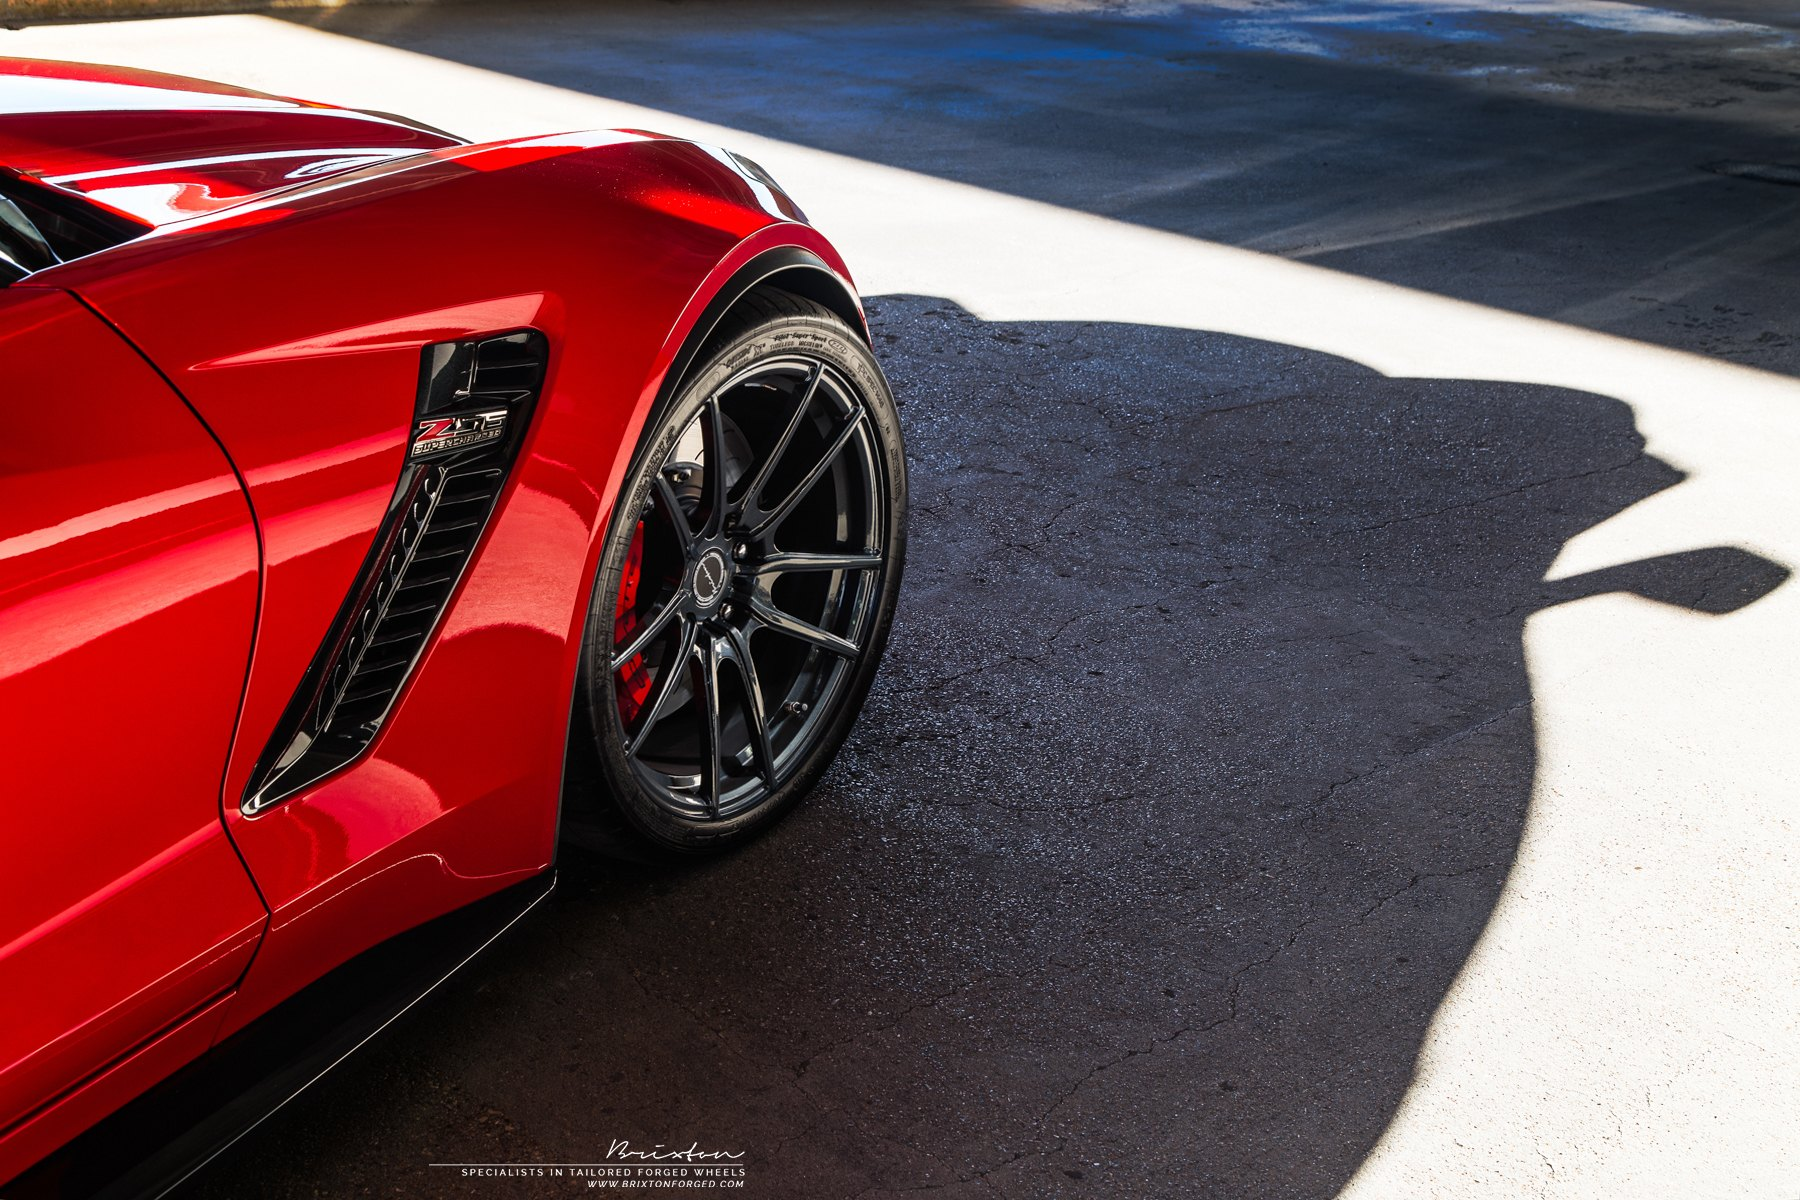 Red Chevy Corvette Z06 with Brixton Forged Wheels - Photo by Brixton Forged Wheels